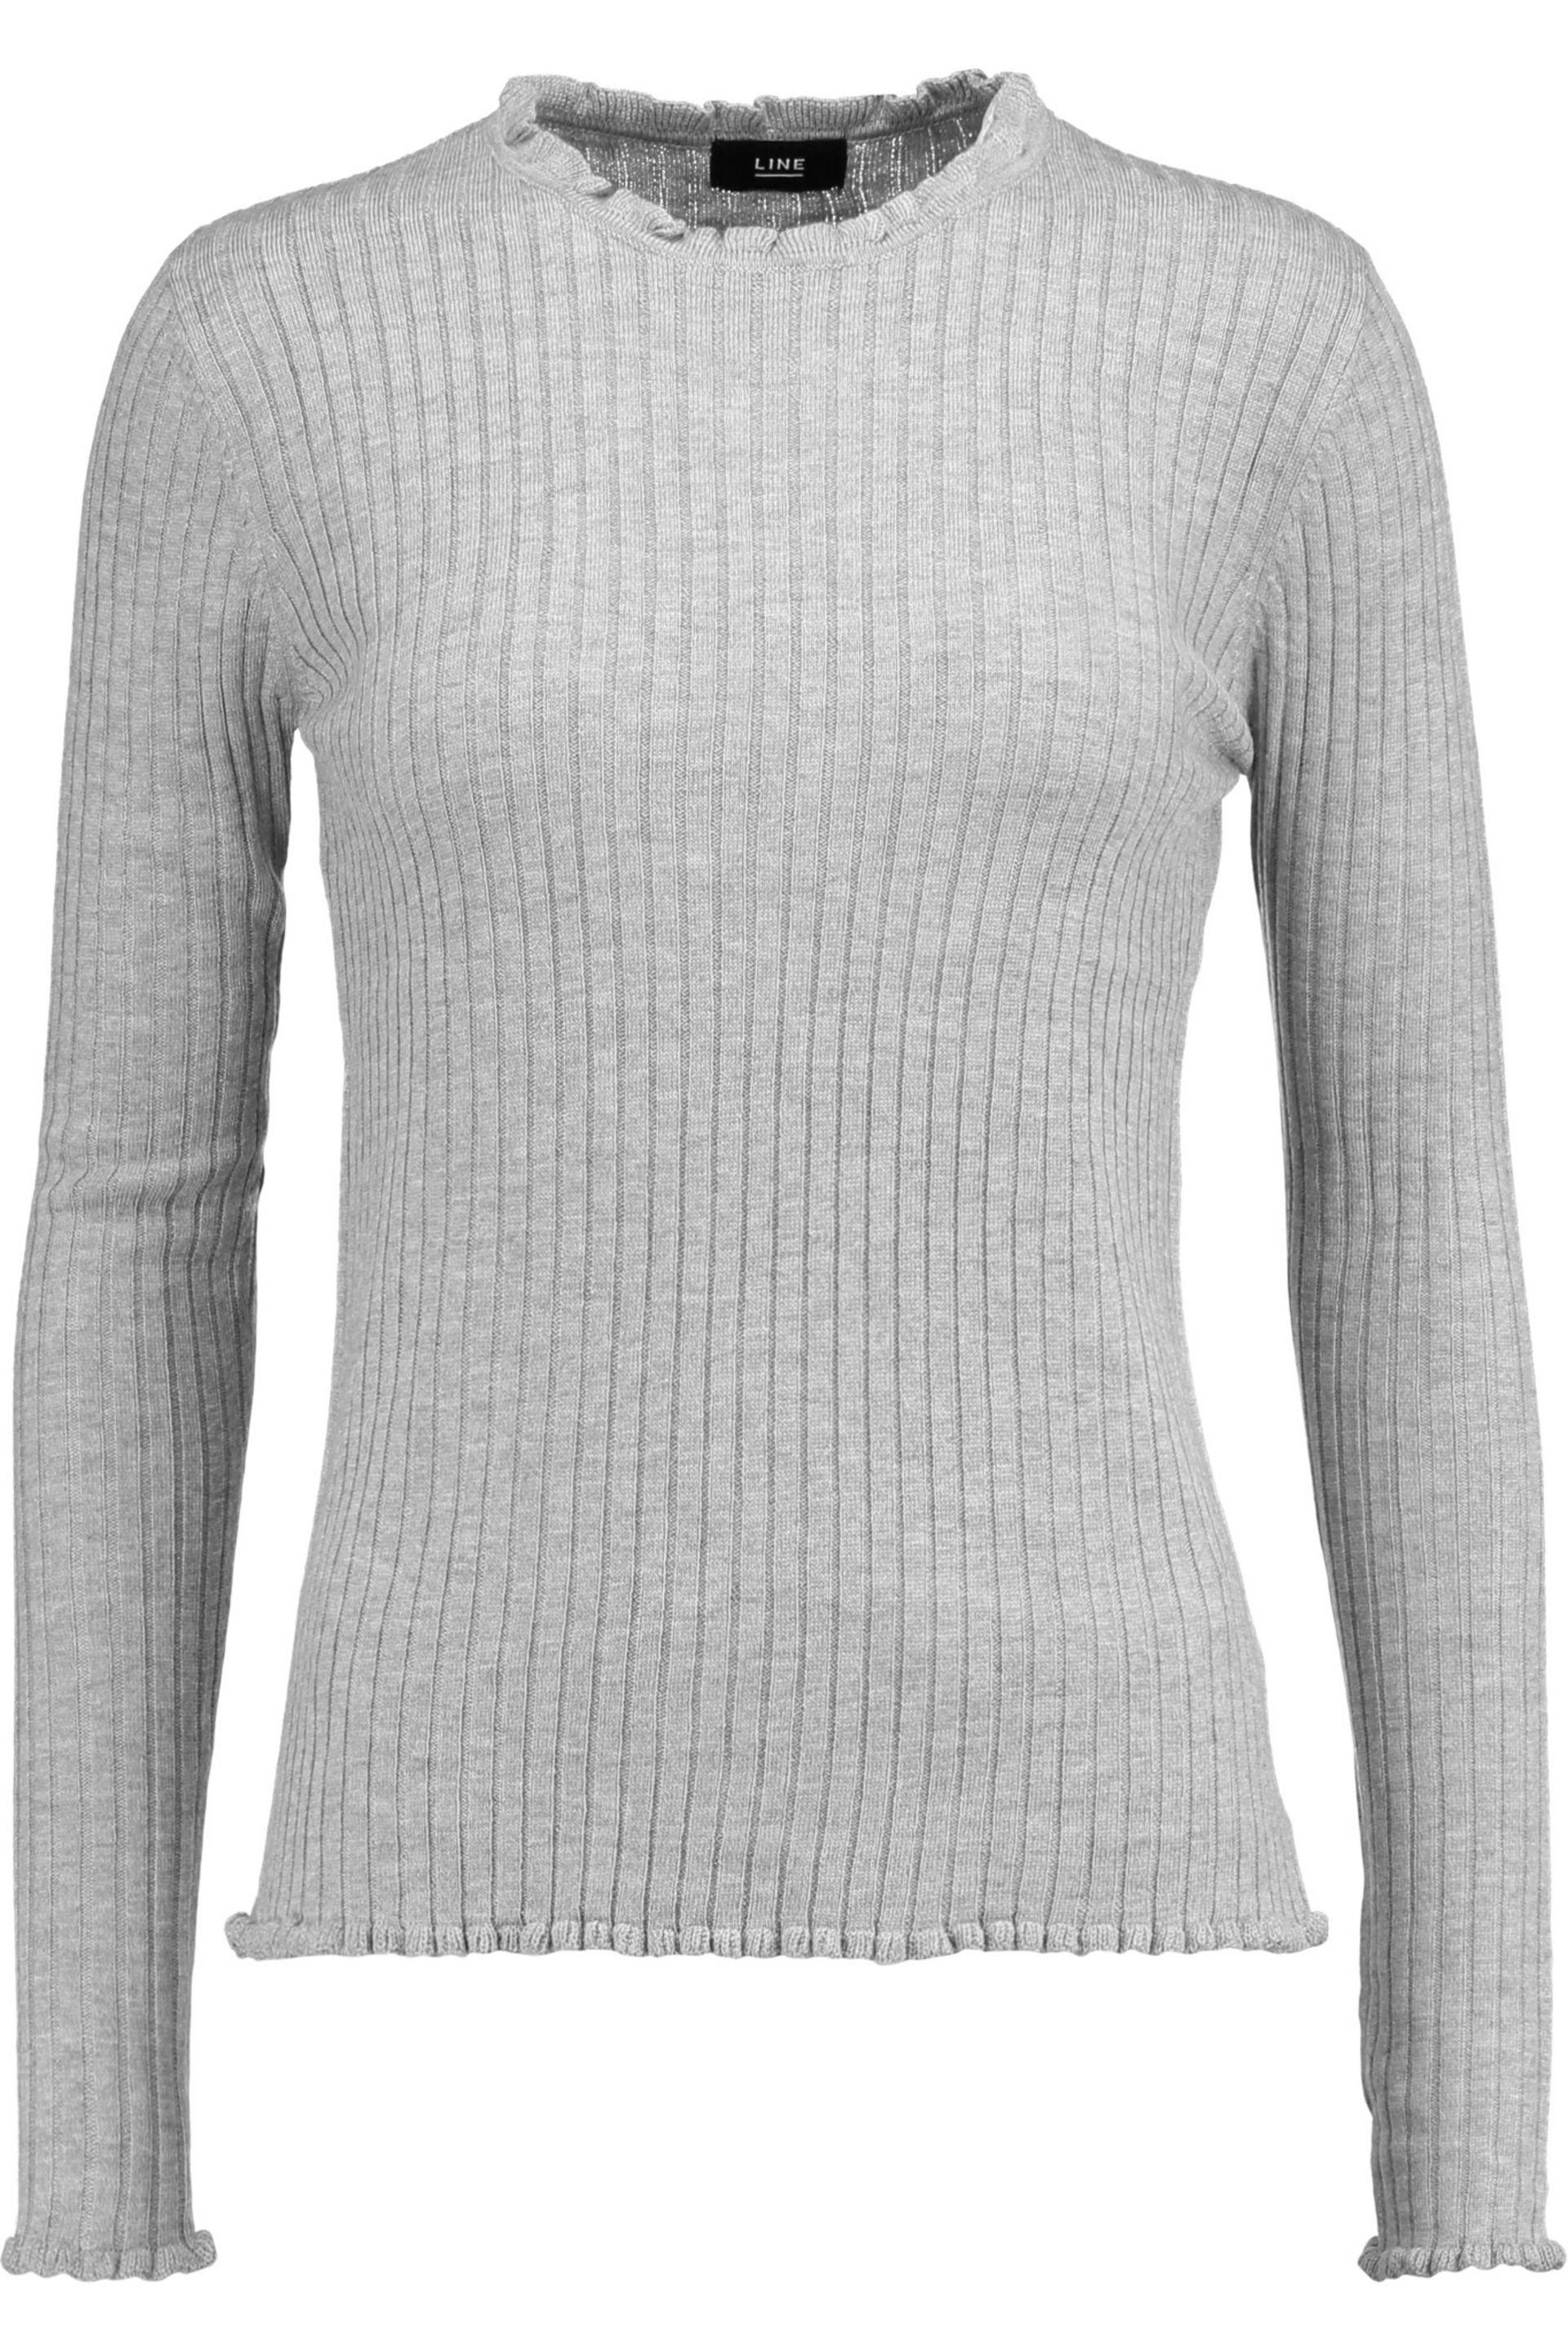 Line Woman Ruffle-trimmed Ribbed-knit Sweater Gray Size XS Line New For Sale Really Clearance High Quality rEfyoOI